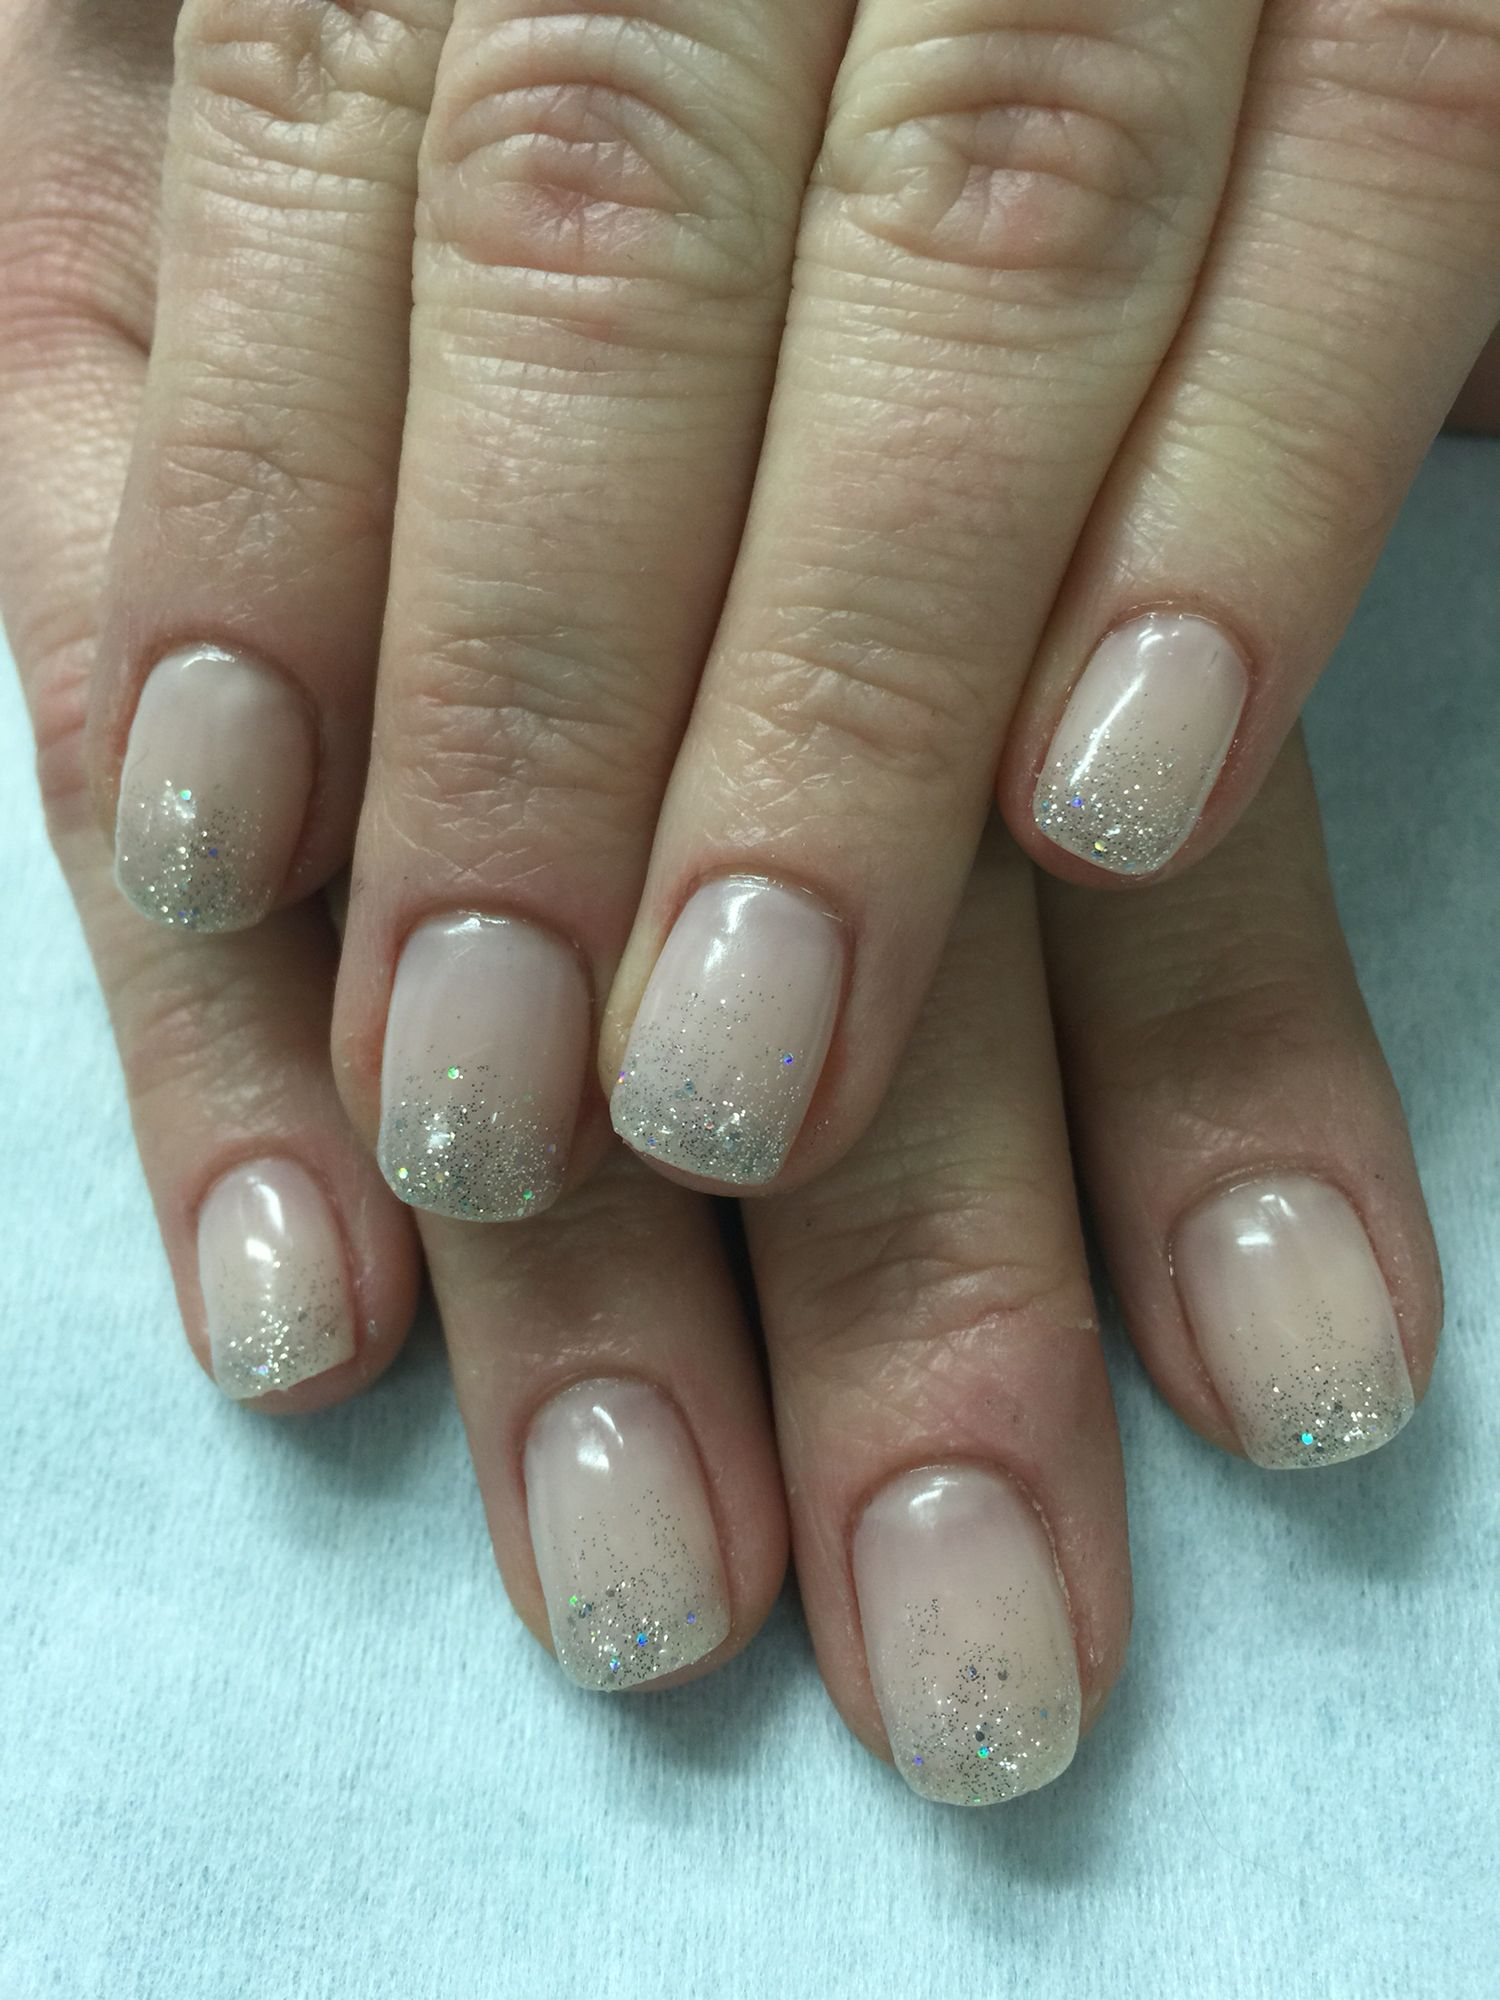 Gradient French Manicure: Nude Nails With Silver Glitter Gradient French Gel Polish